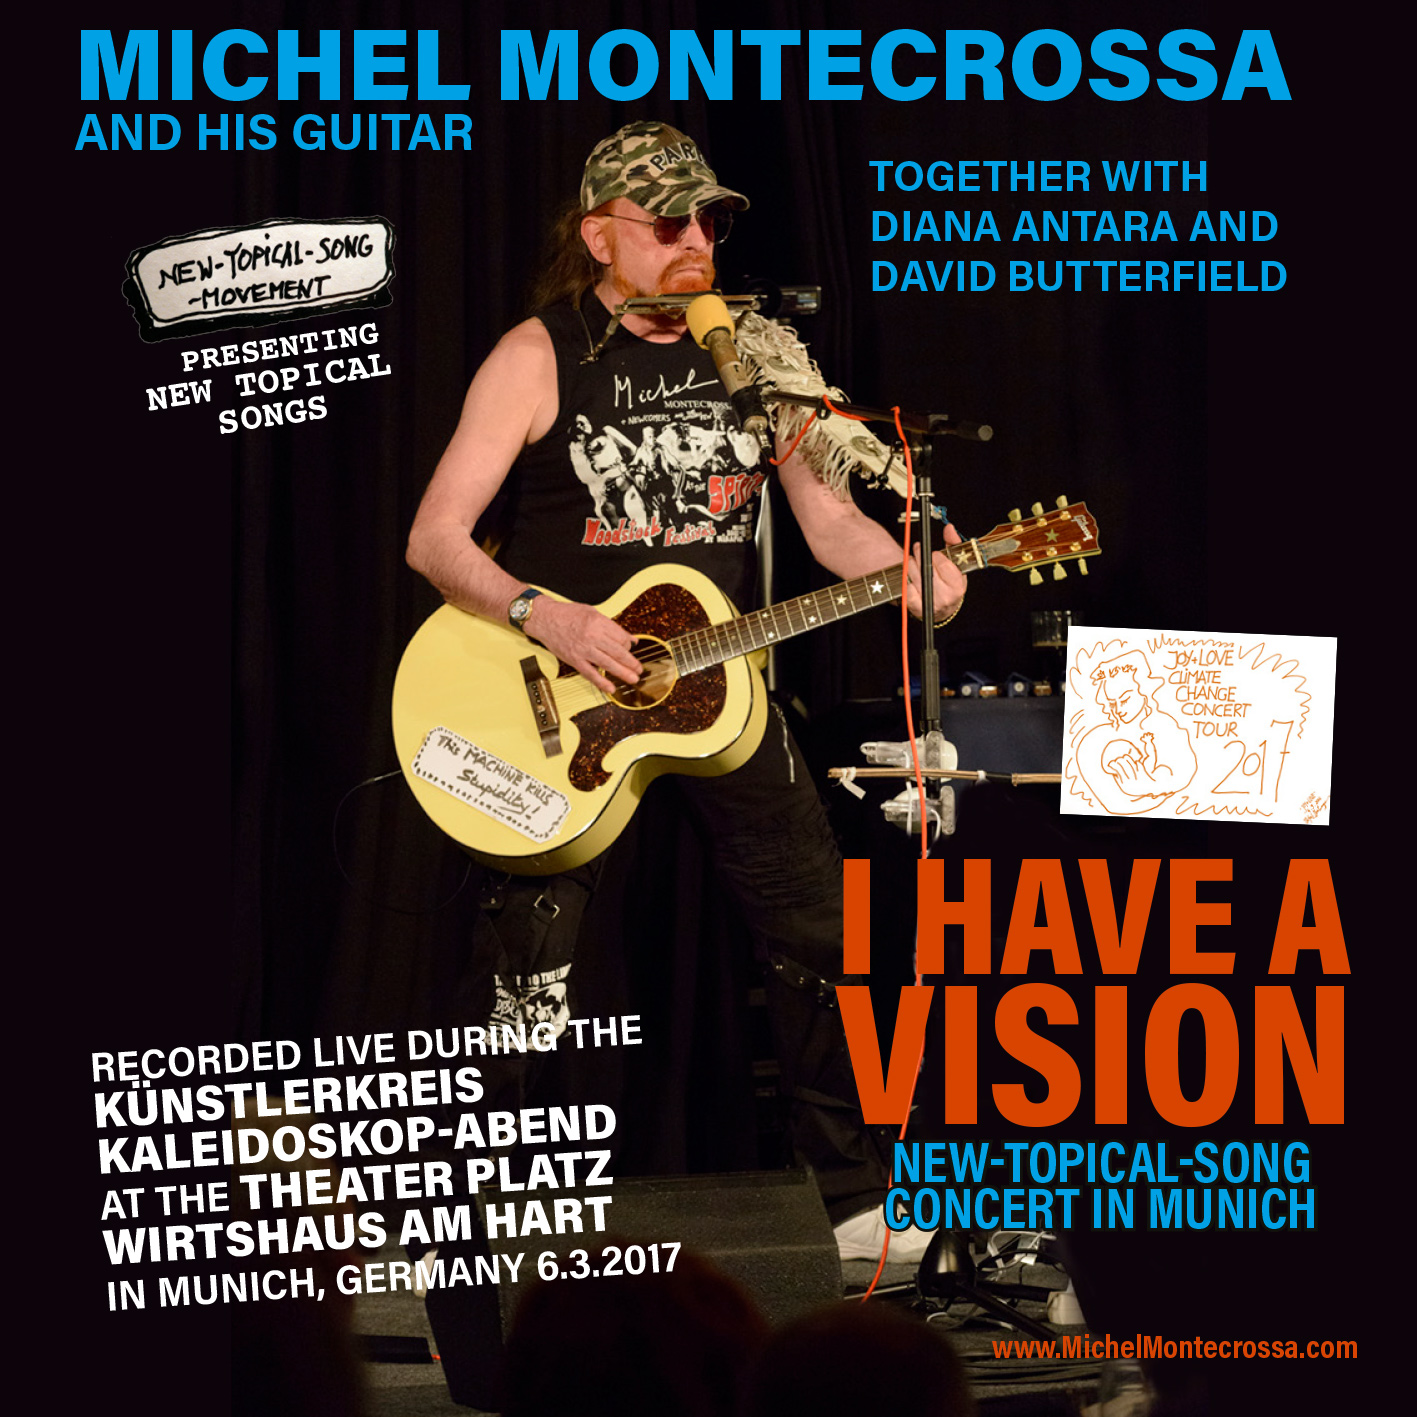 I Have A Vision New-Topical-Song Concert in Munich